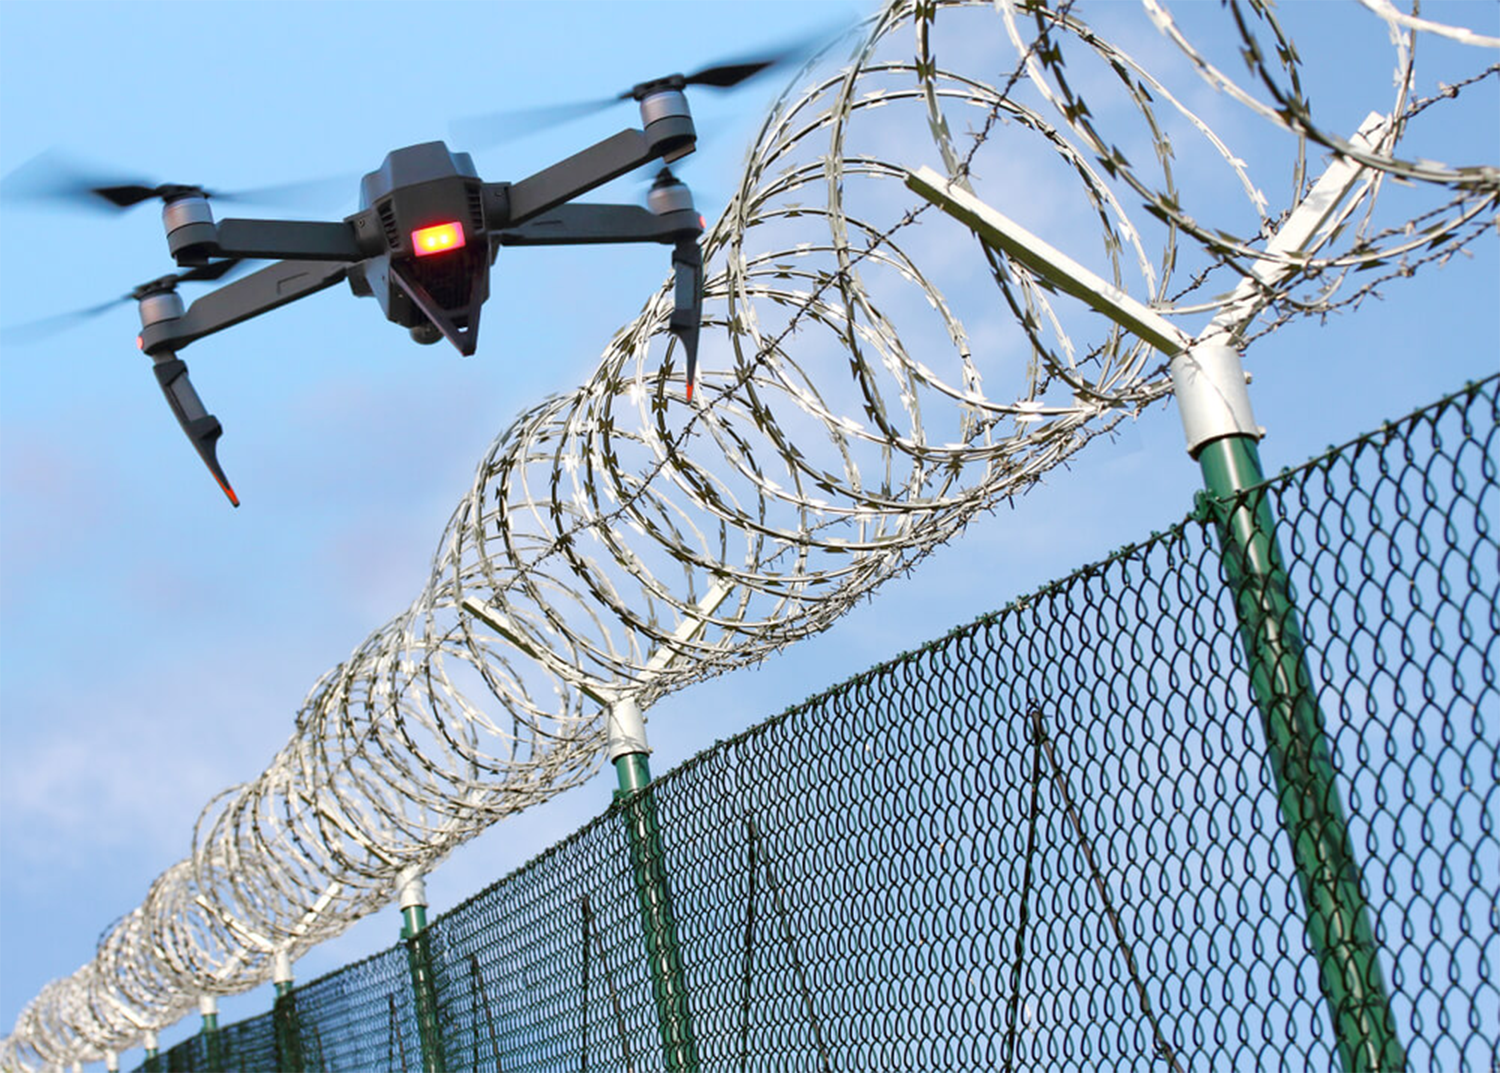 Drone entering a restricted airspace